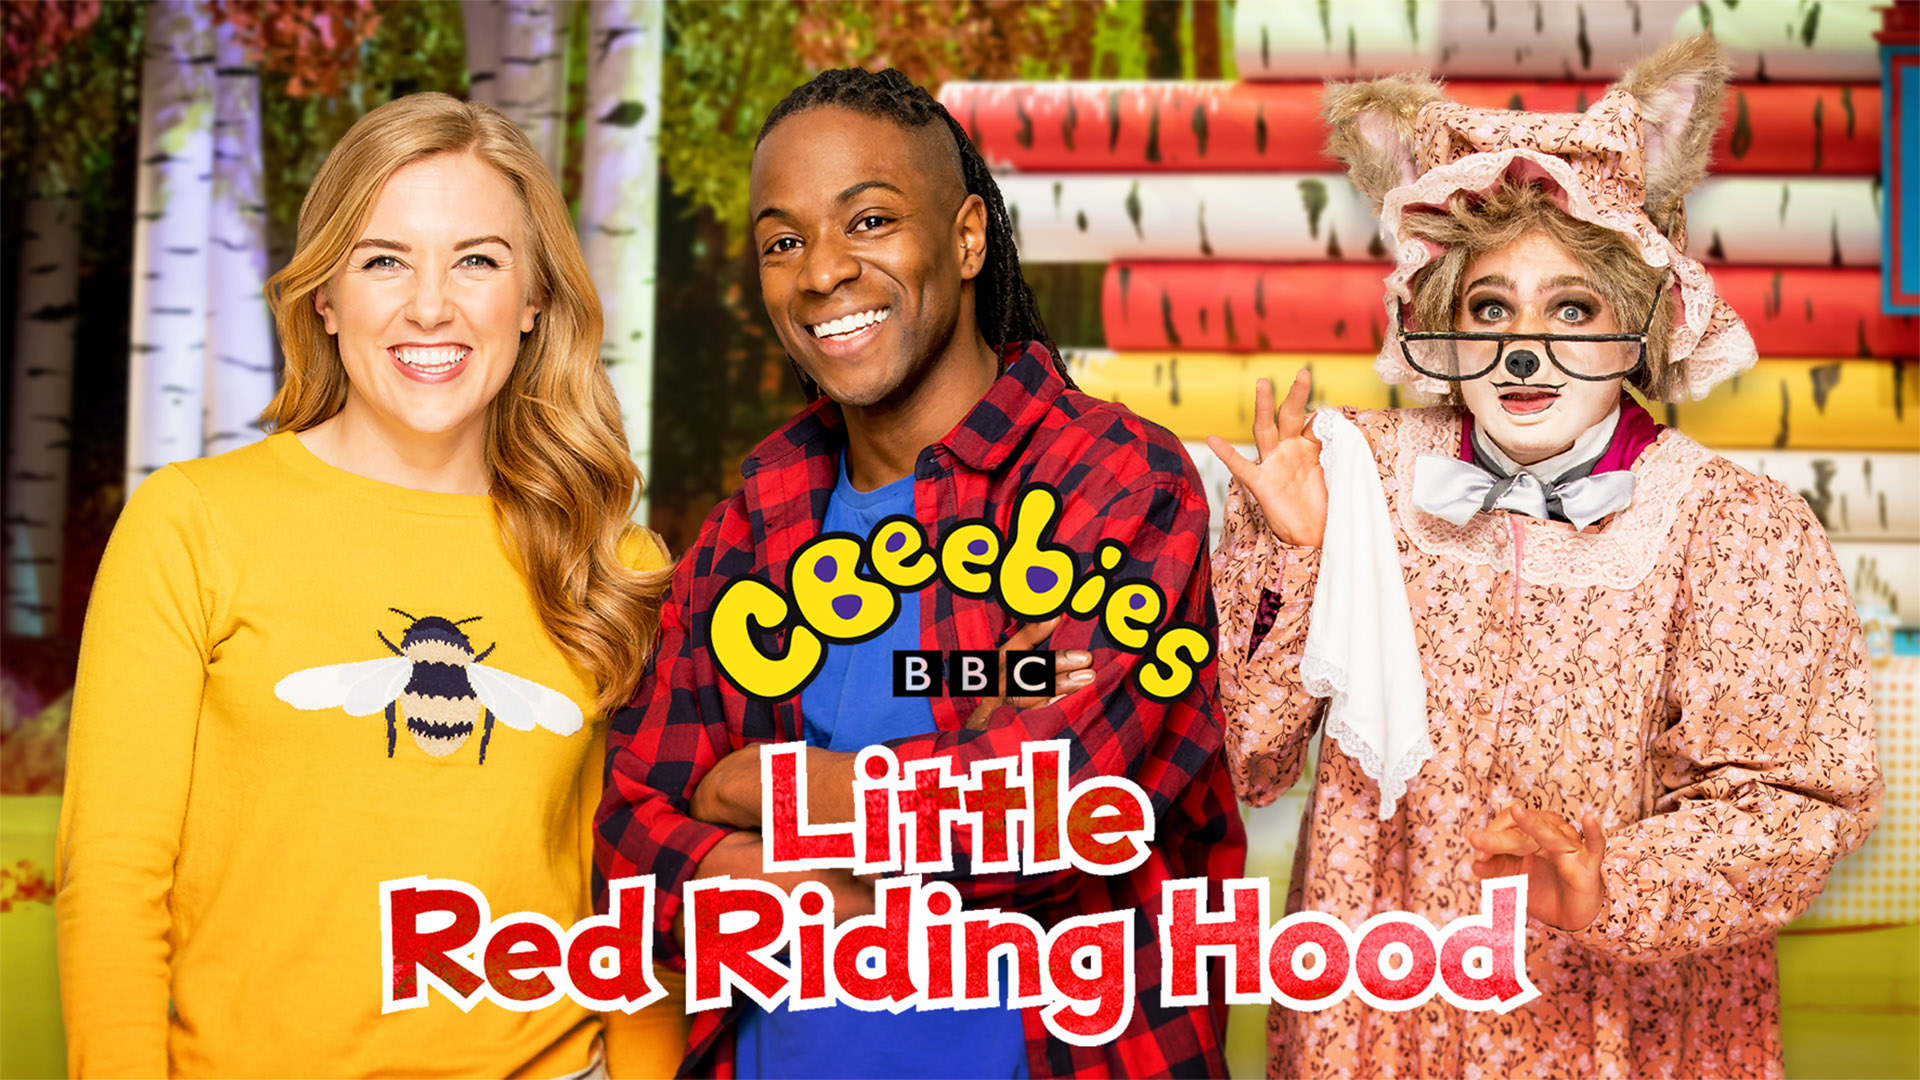 Nigel Clarke Blog - CBeebies Ballet - Little Red Riding Hood - Maddie Moate, Nigel Clarke, and The Wolf